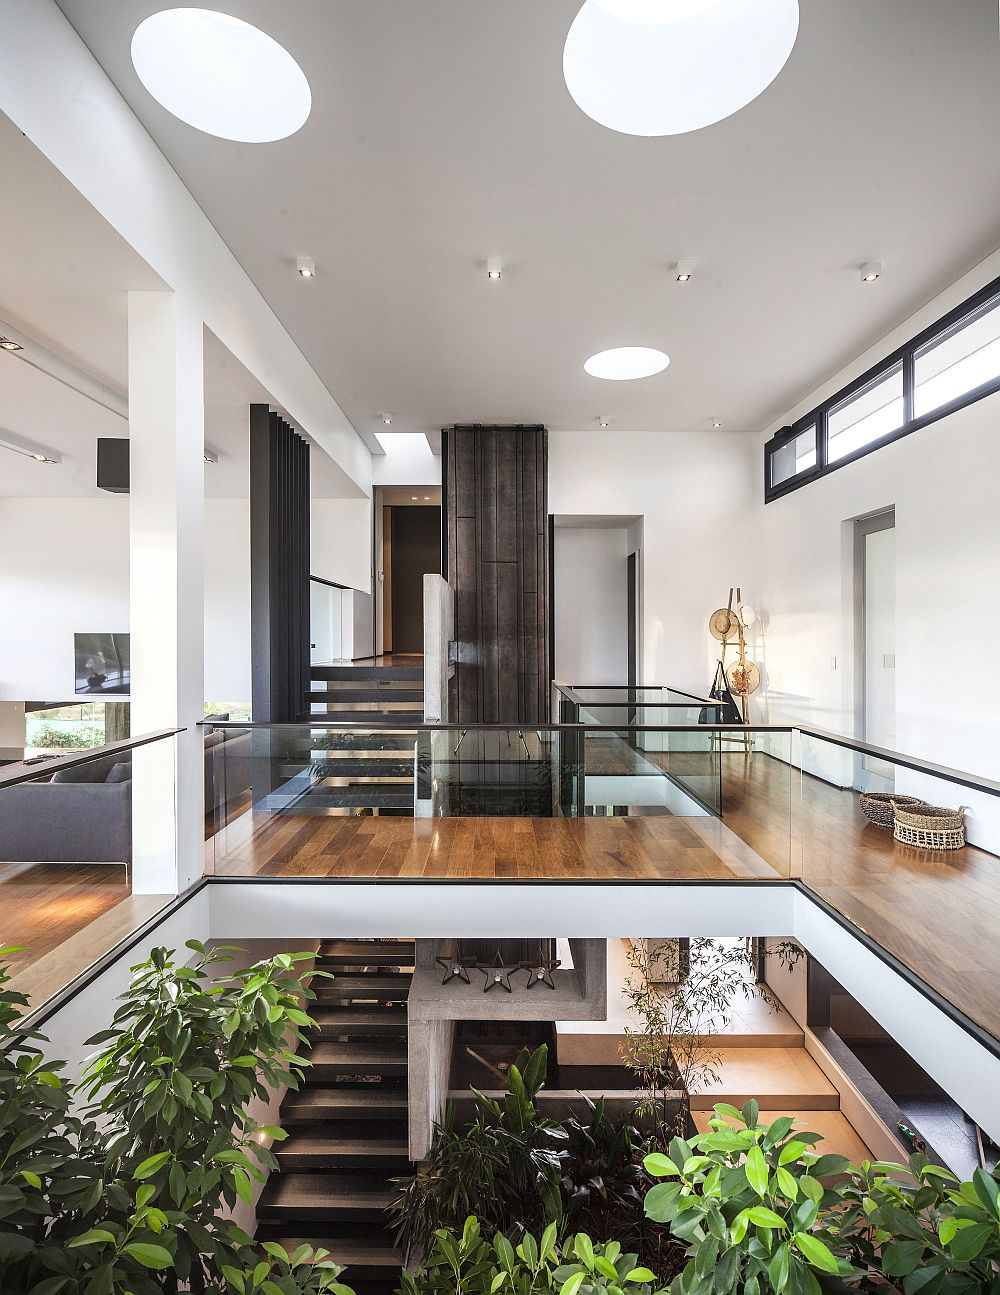 Cleverly interconnected multi-level interior of the Argentine home